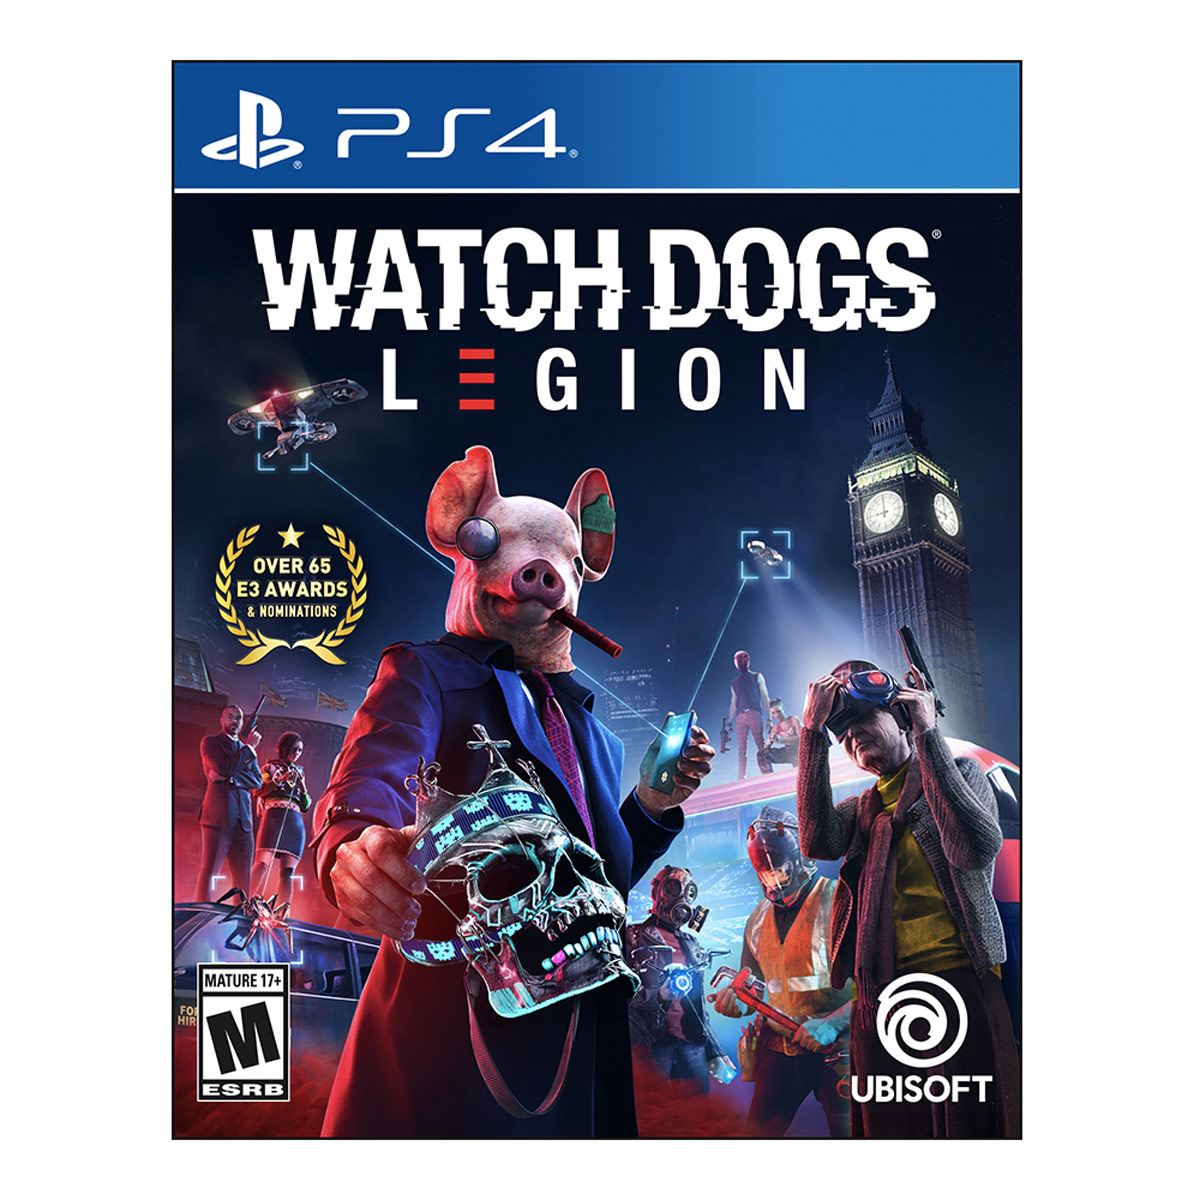 PS4 Watch Dogs Legion Limited Edition